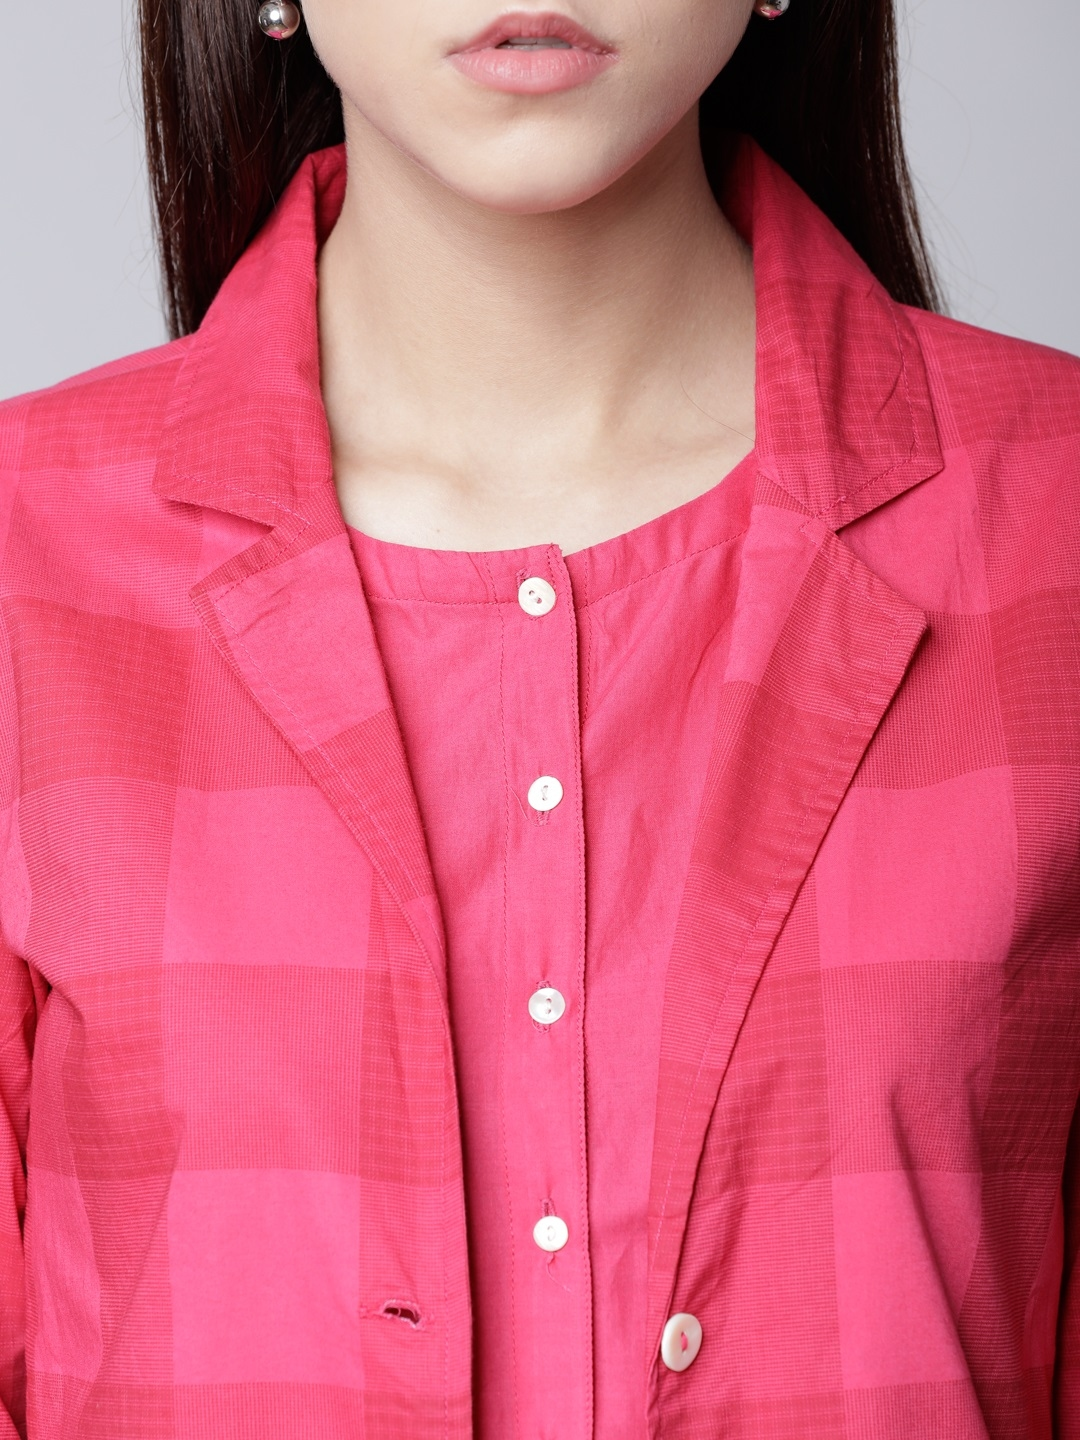 Buy Vishudh Women Pink Checked Shirt Dress With Front Open Jacket ... ddc9b99a3